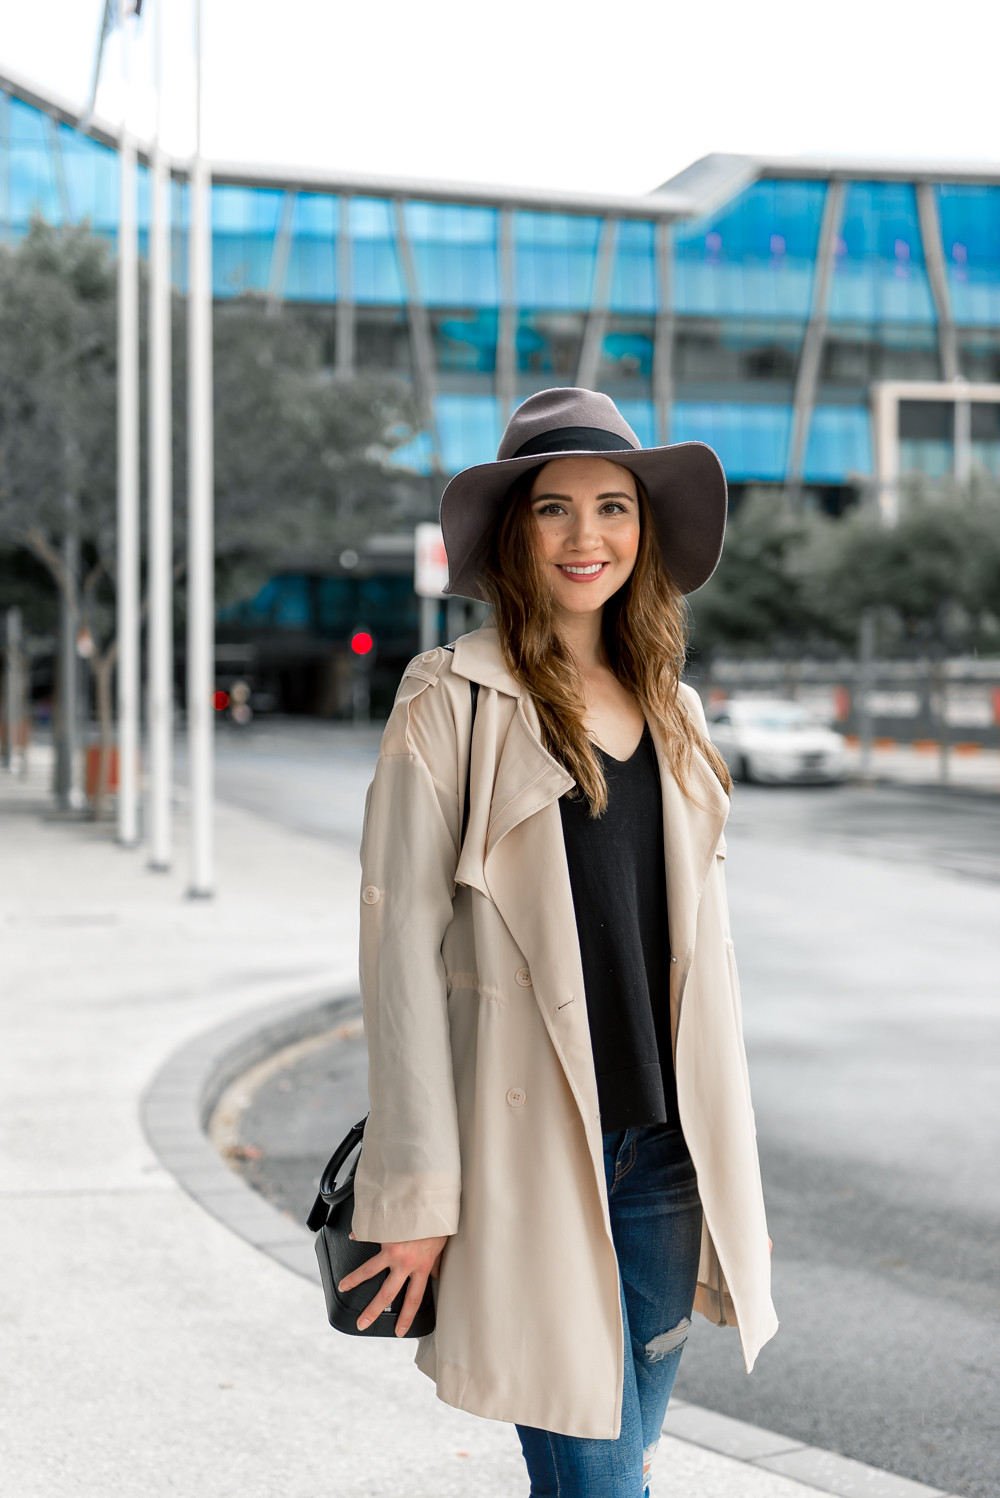 Stylish winter outfit with boho hat